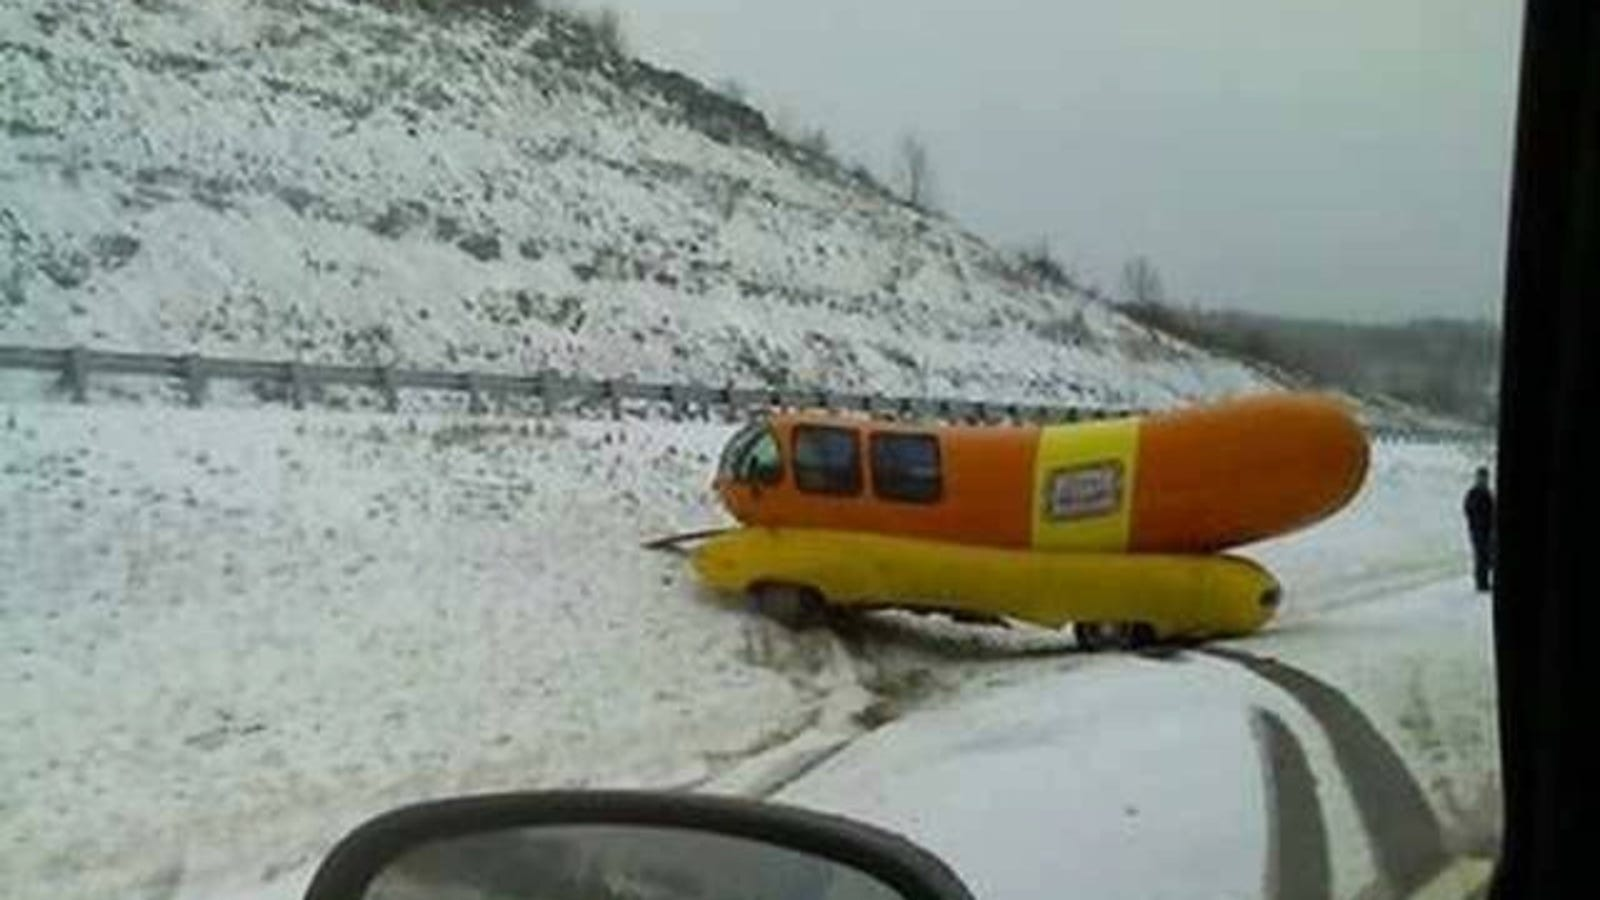 Hot Dog Vendors additionally courtweek together with 03994 moreover Bunker Cam Always Turn Your Wiener Into The Skid additionally 1471836155. on oscar mayer wienermobile ditch